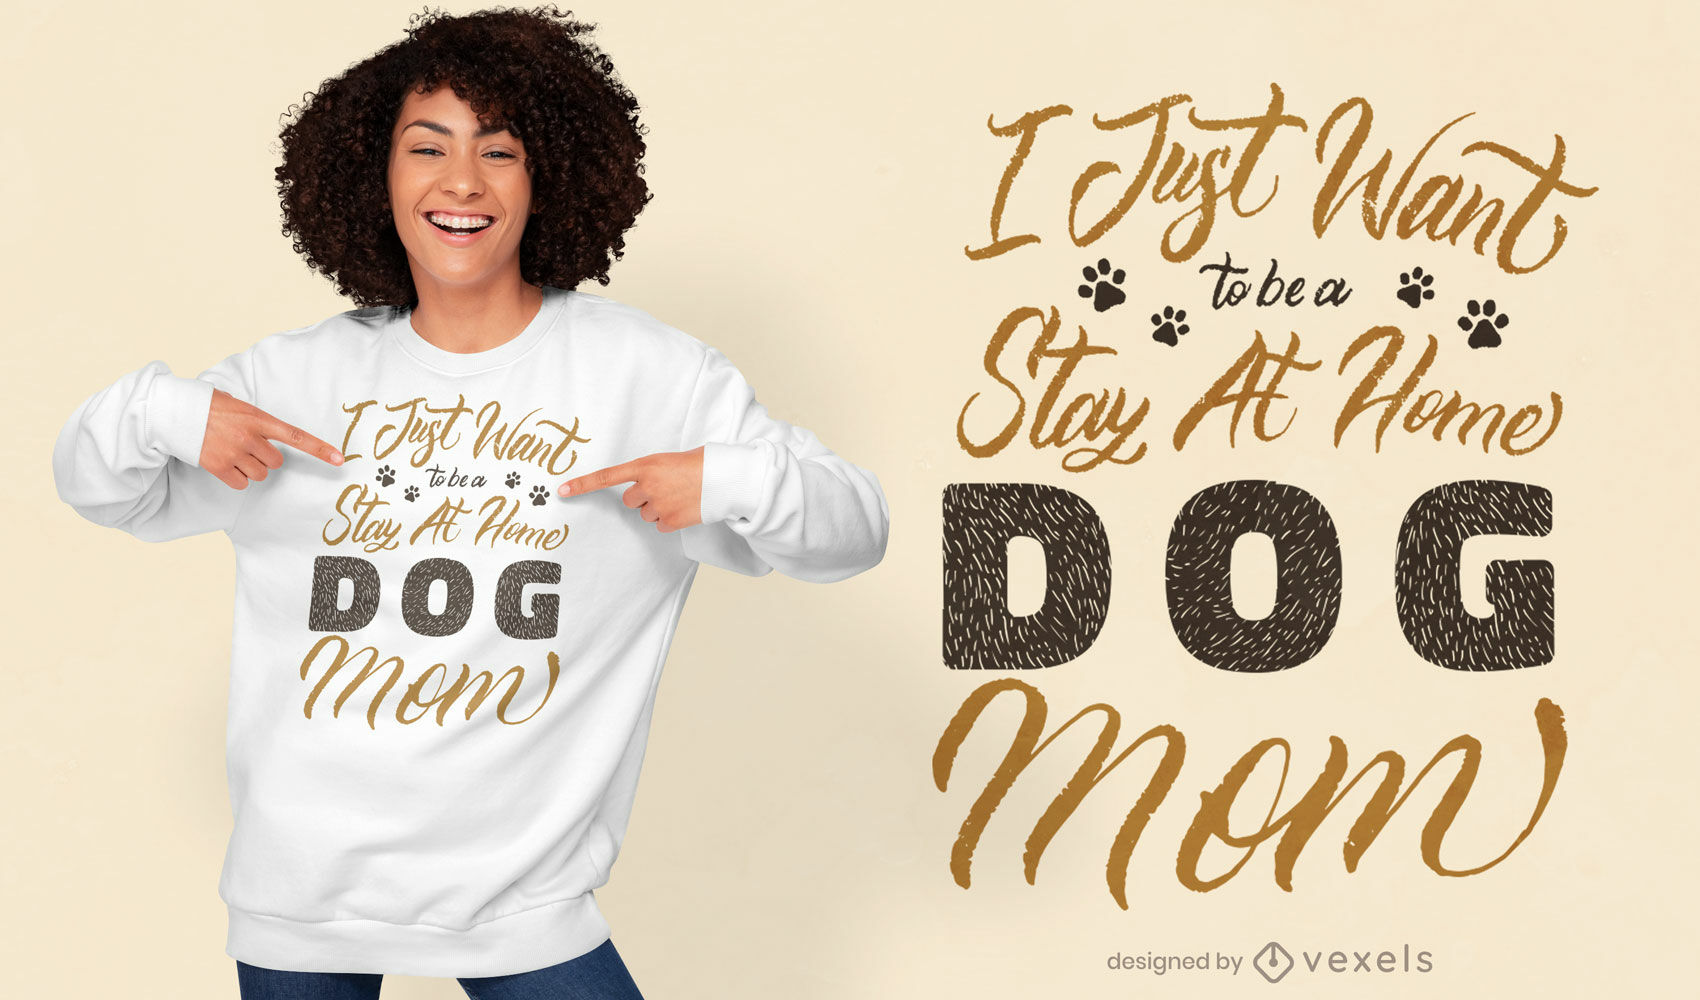 Stay at home dog mom t-shirt quote design